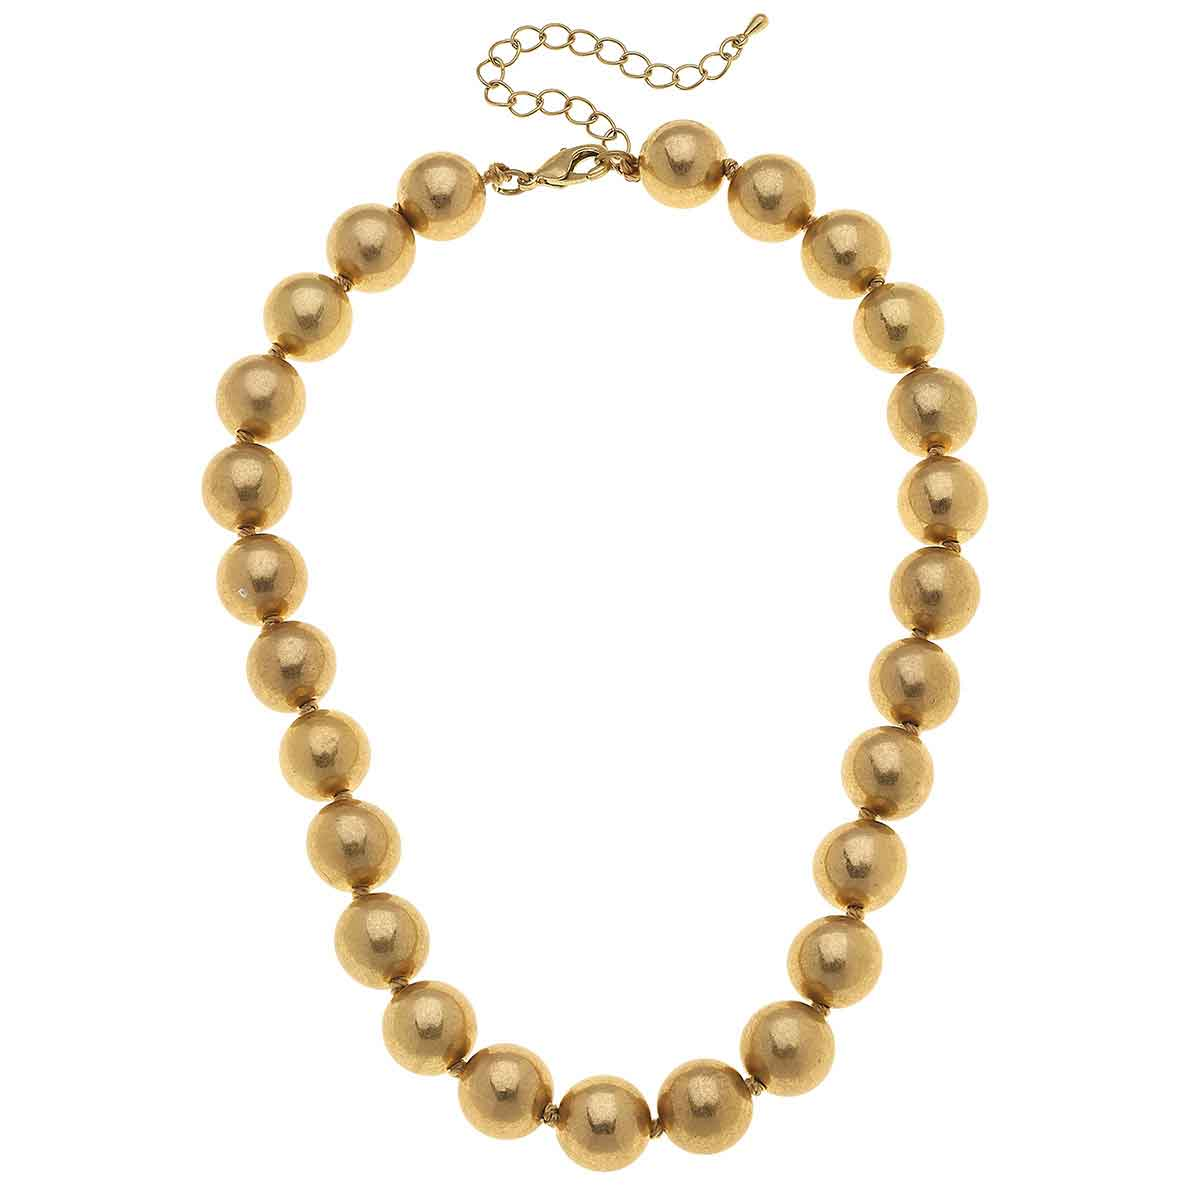 Eleanor Beaded Necklace in Worn Gold